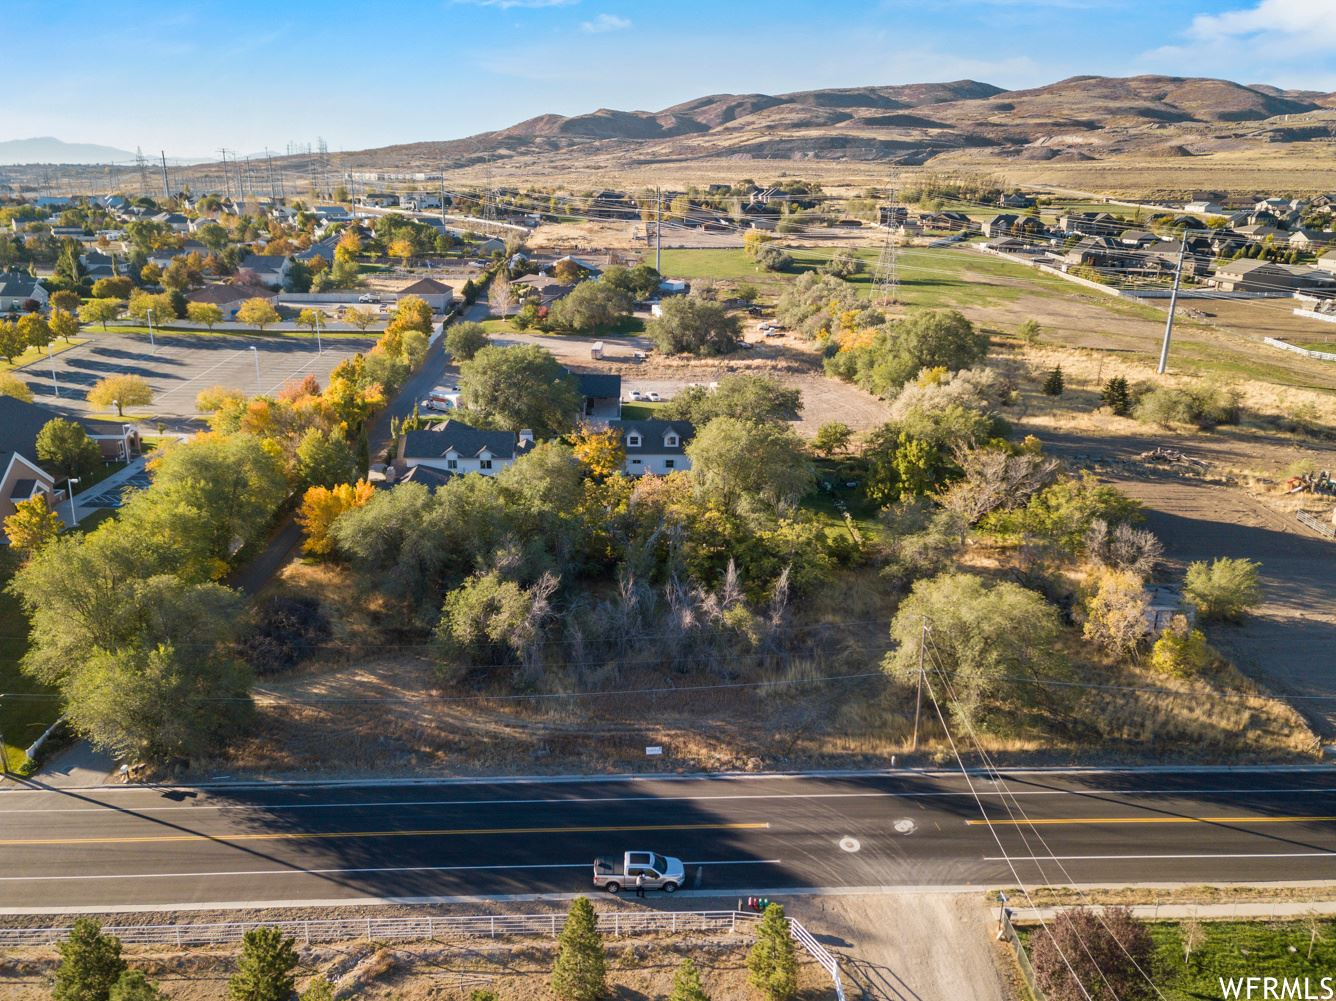 Photo of 2485 W 15000 S, Bluffdale, UT 84065 (MLS # 1707473)